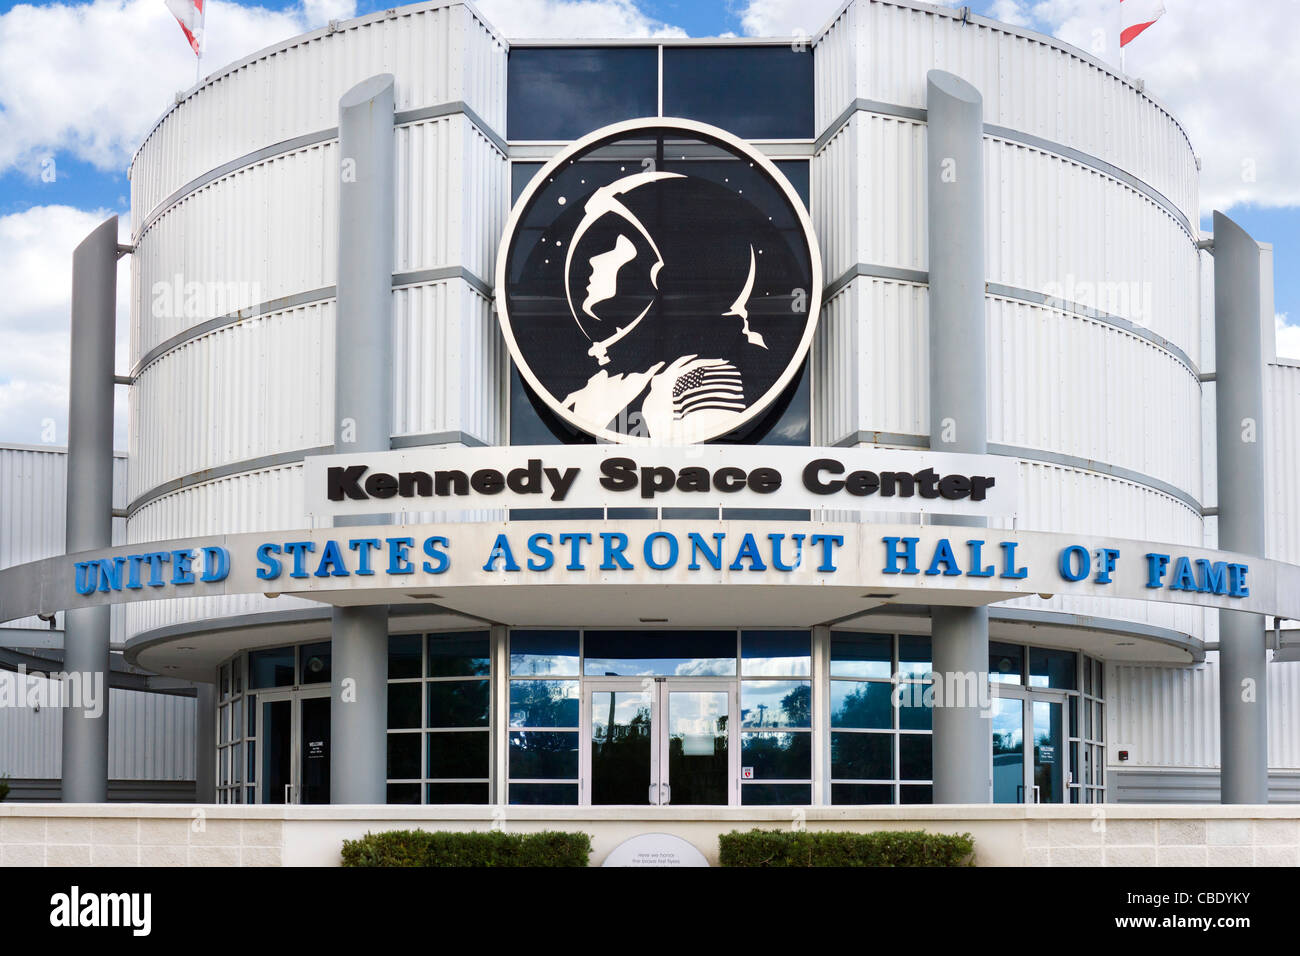 Kennedy Space Center United States Astronaut Hall of Fame, Florida, USA - Stock Image